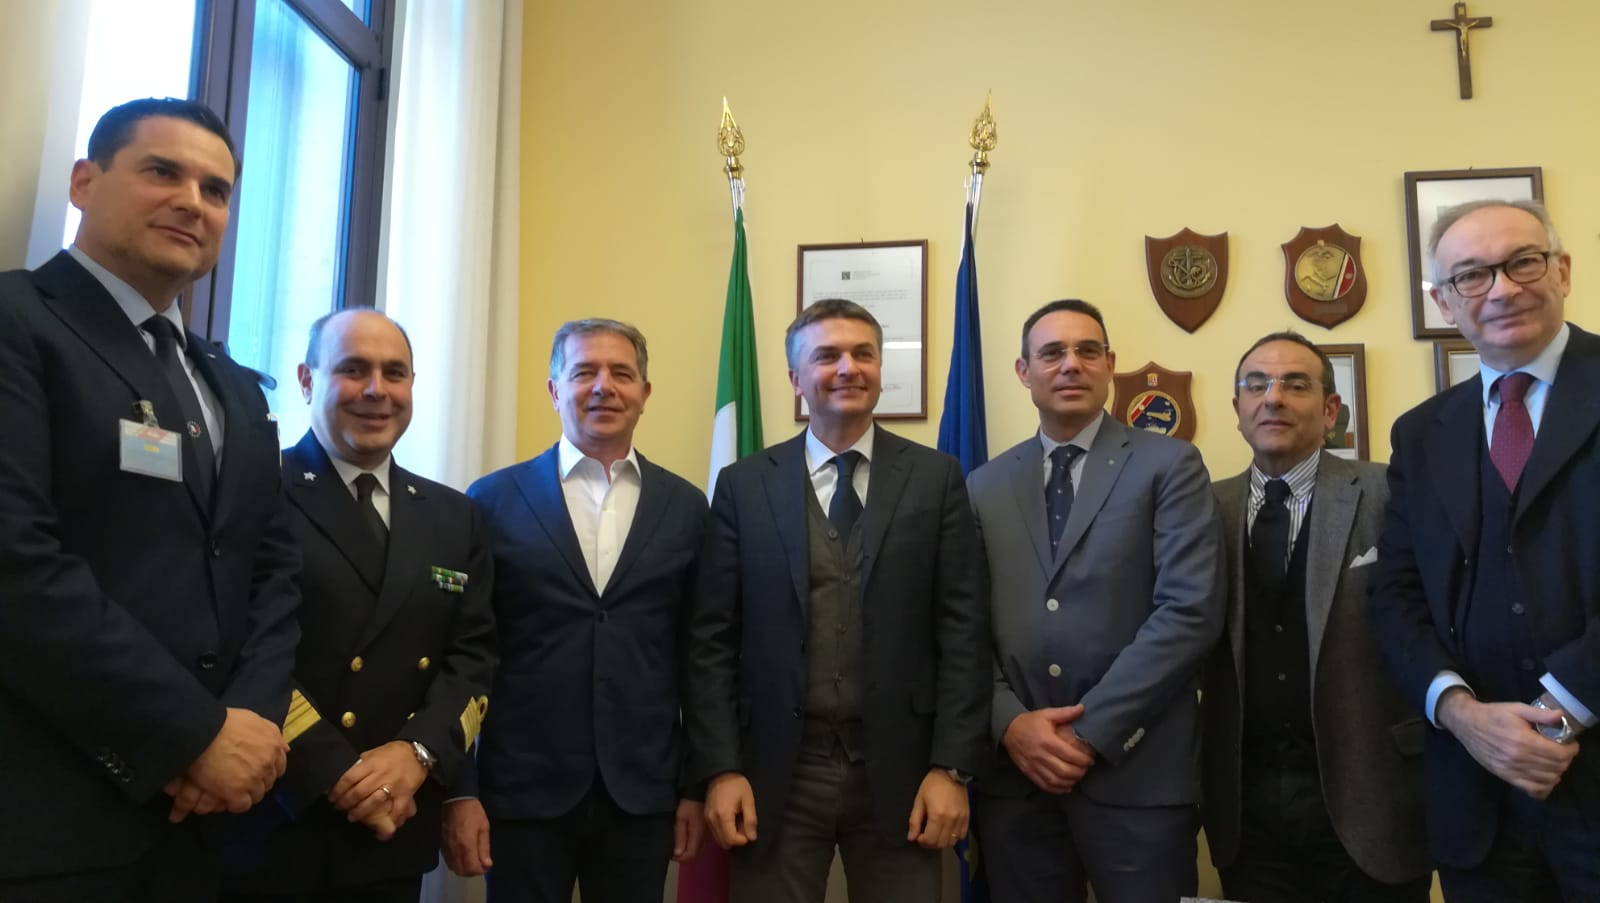 PRESIDENTE BANDIERA ALL'INCONTRO CON RIXI IN CP AD OLBIA